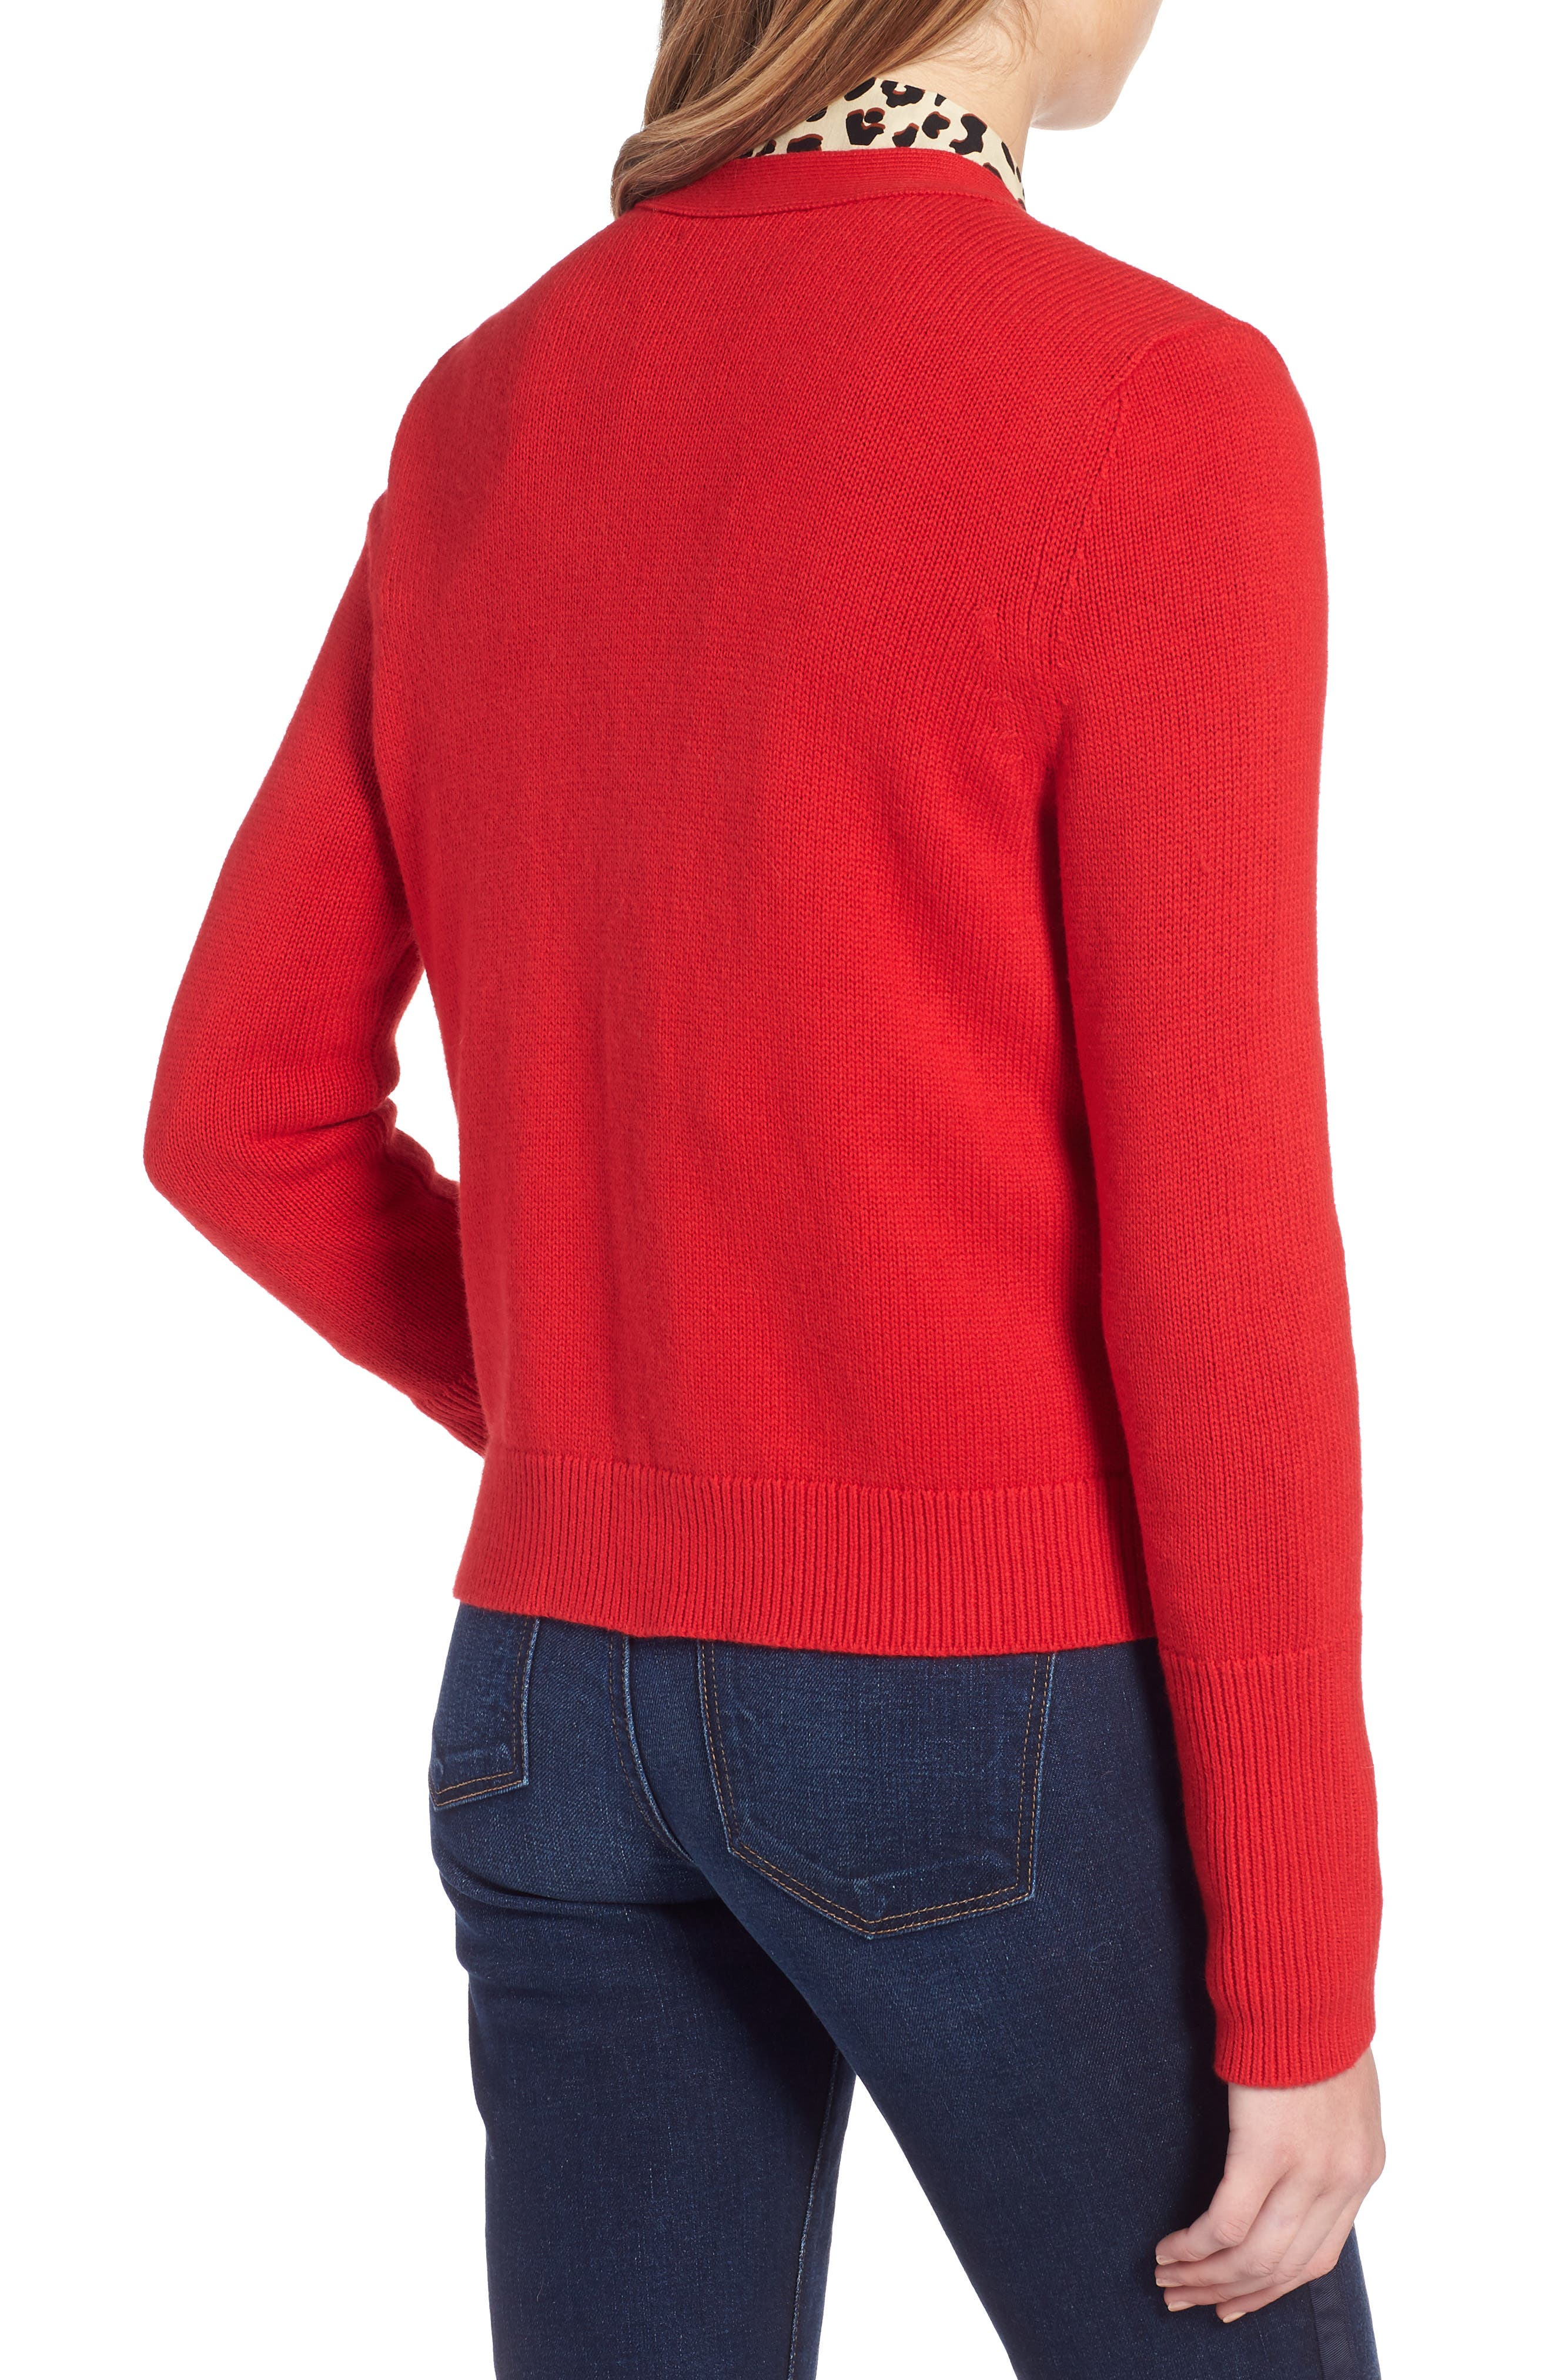 Cotton Cashmere Colorblock Cardigan,                             Alternate thumbnail 2, color,                             Red Chinoise